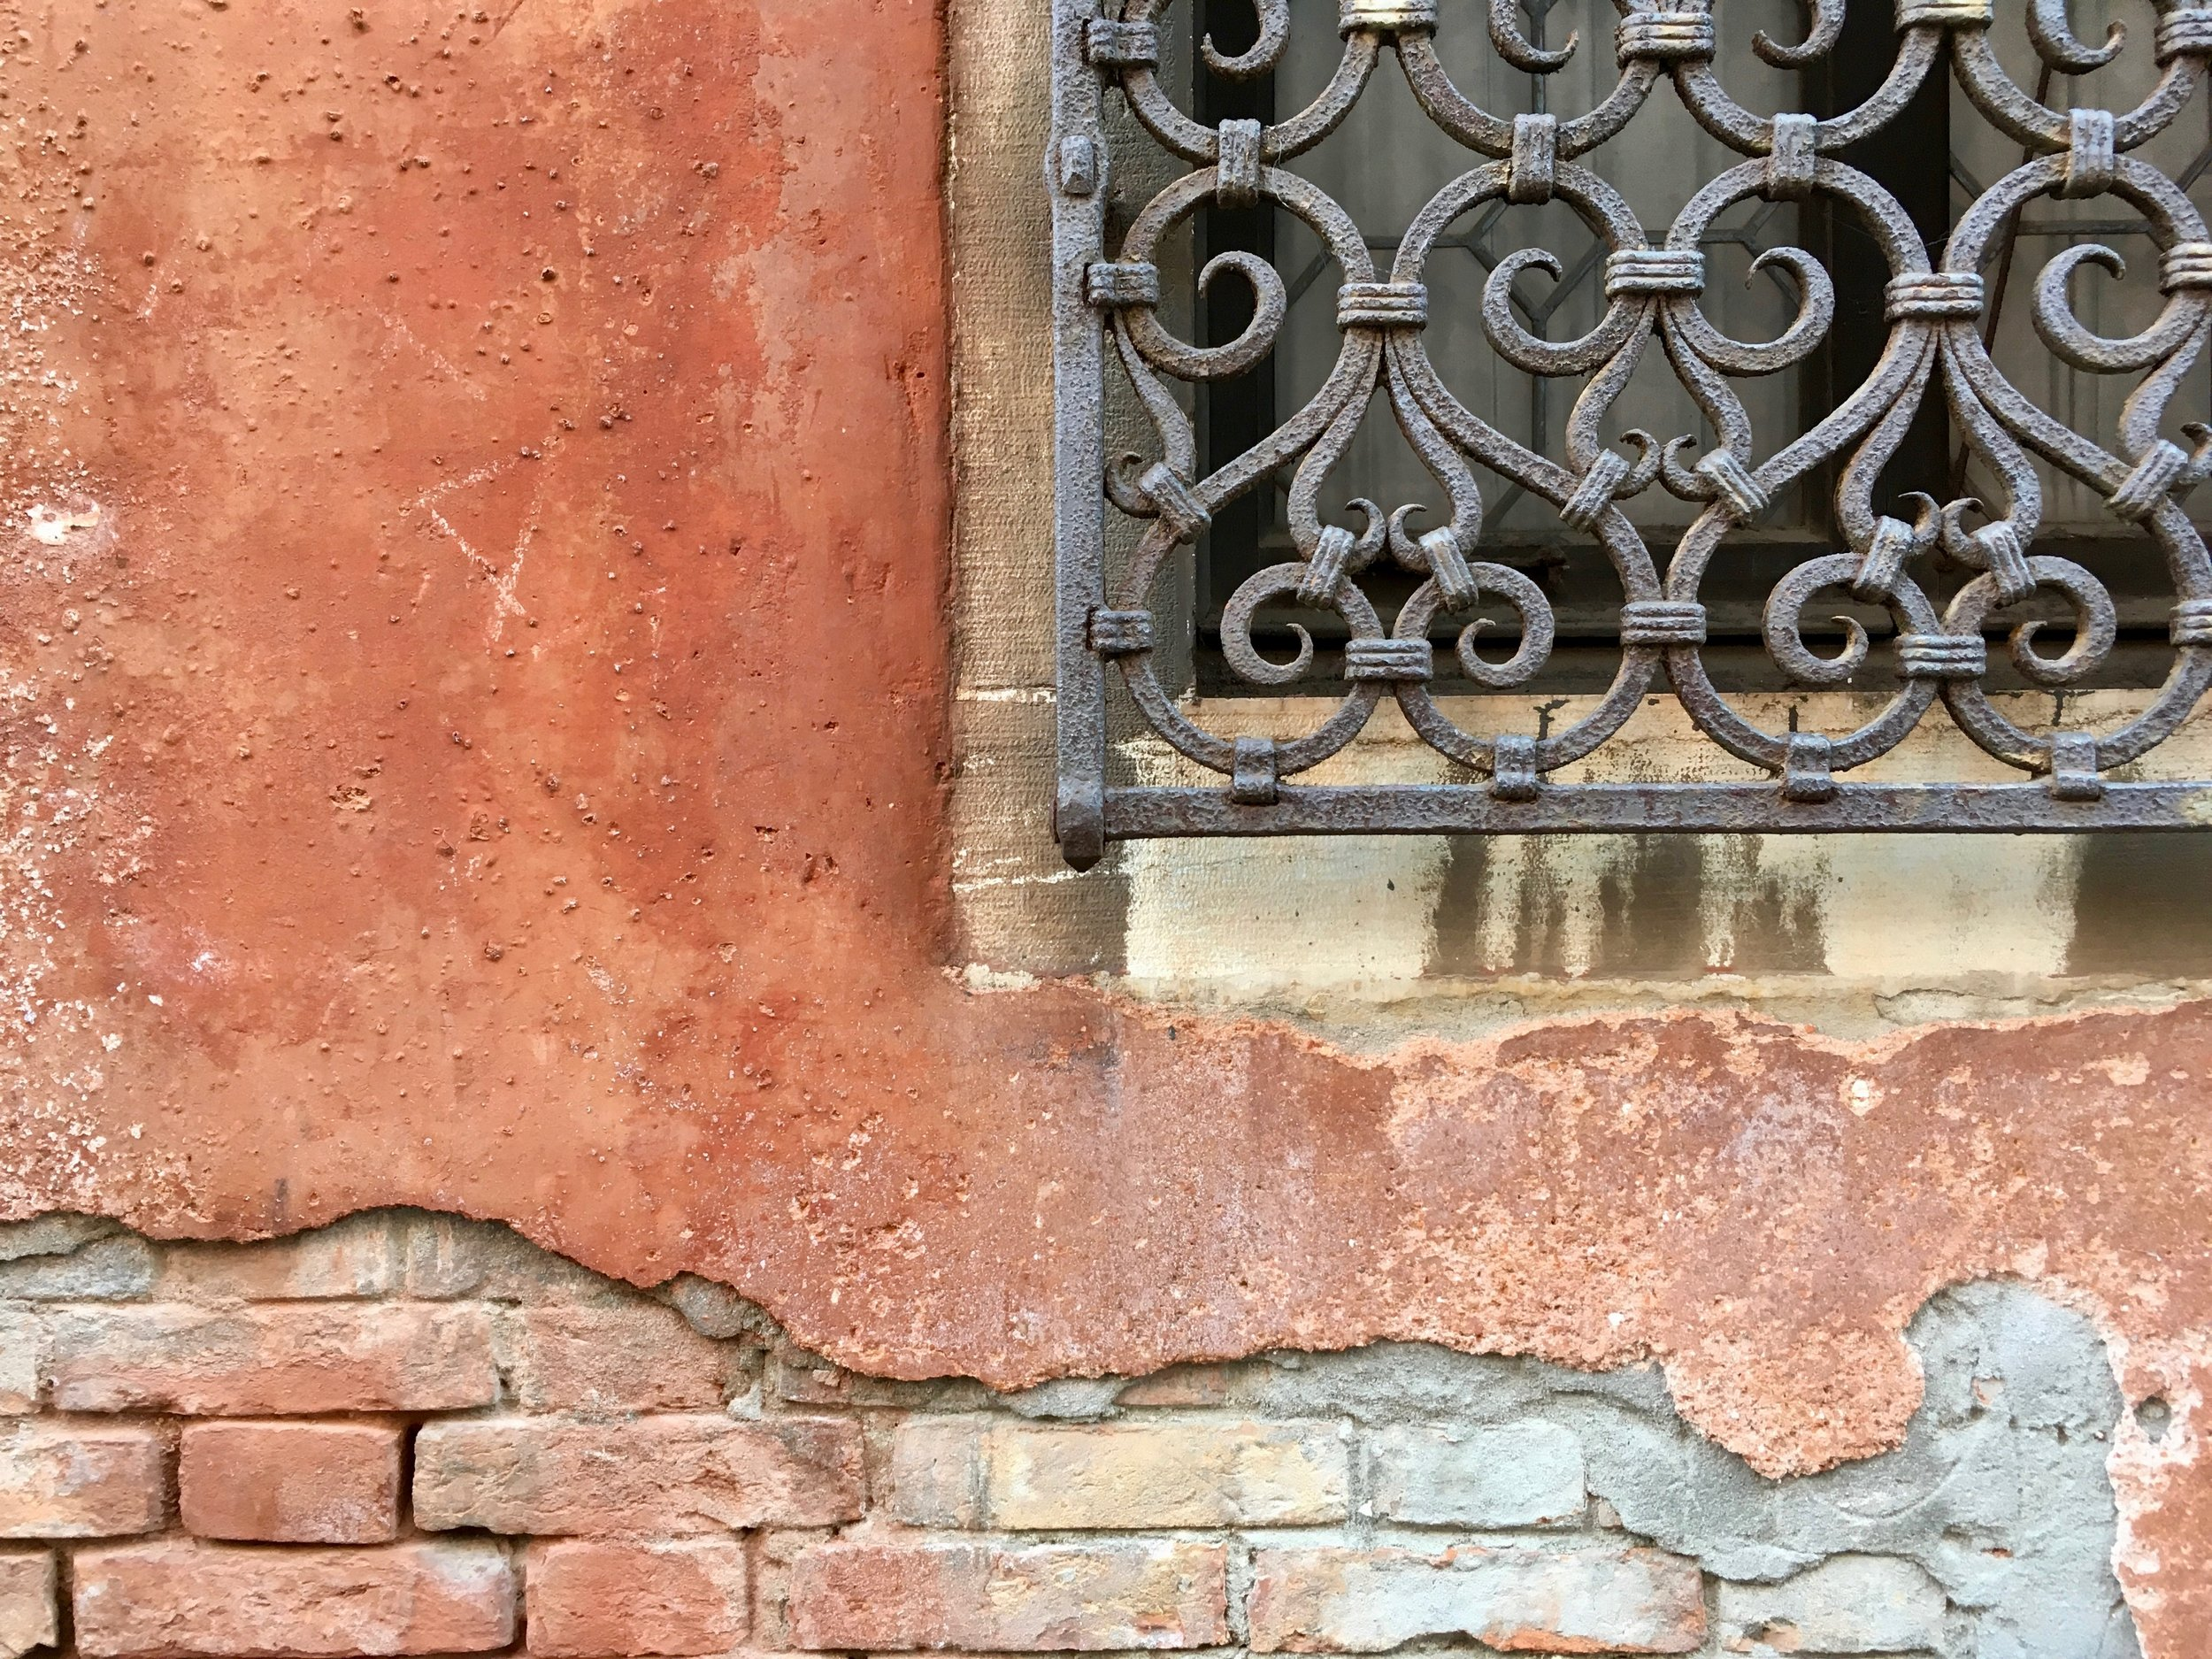 Everything here starts oxidized or looks great even while crumbling to pieces (yes, those bricks could be repointed).